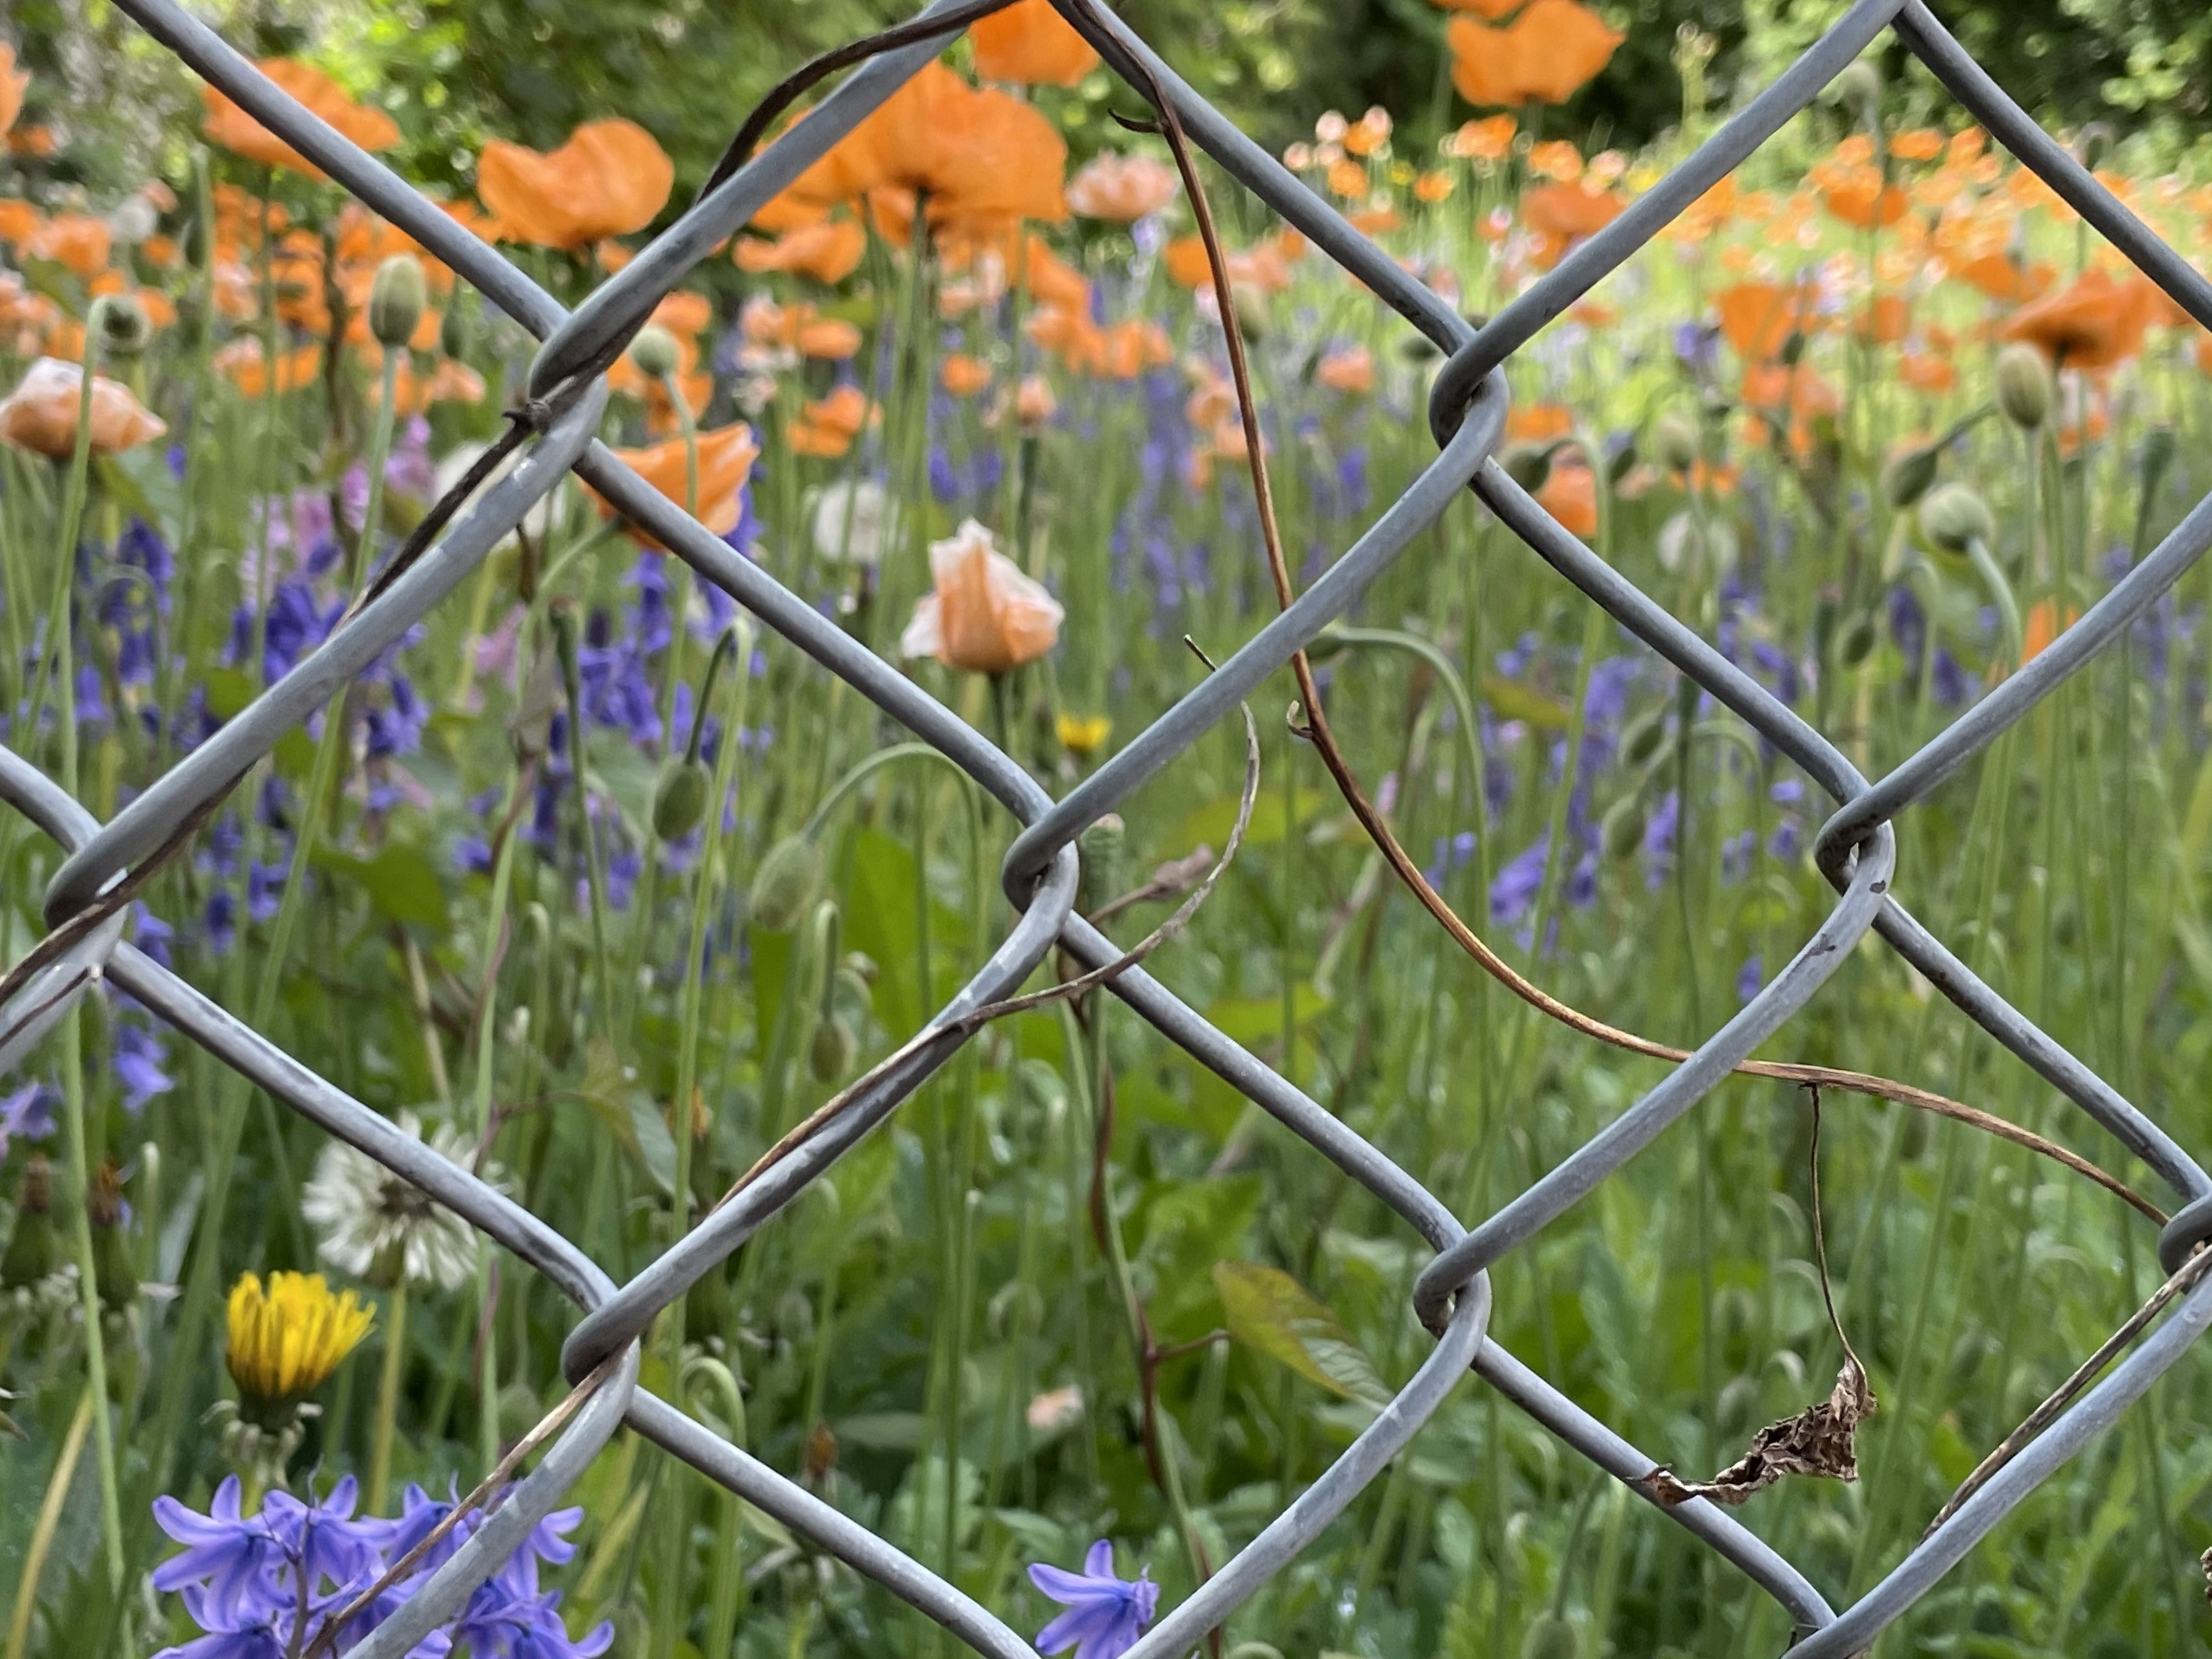 Photo of chain link fence and small meadow of poppies, grass and wildflowers with dry tendrils climbin up fence.